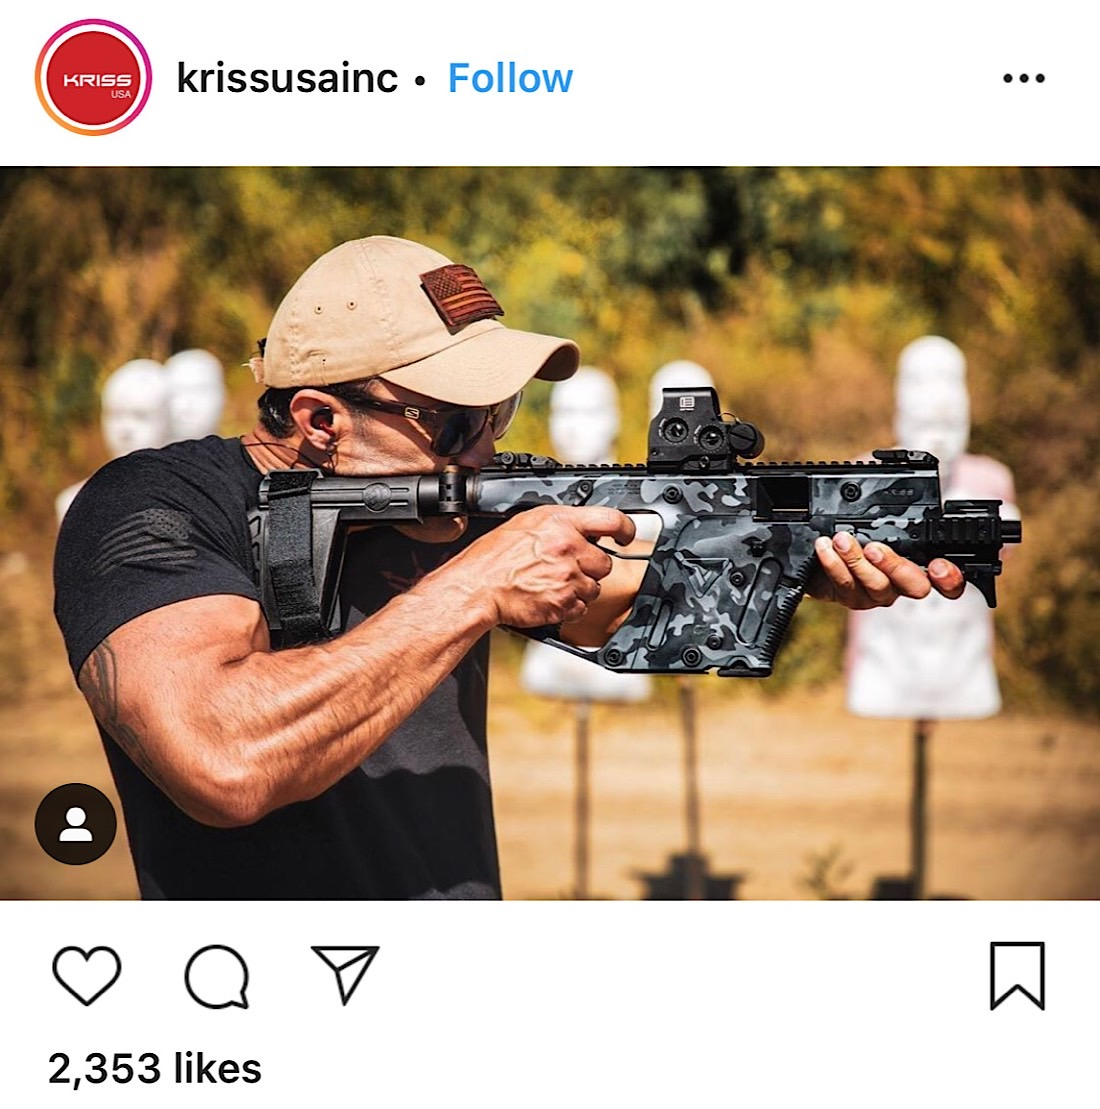 An Instagram post from firearms company Kriss USA Inc (Instagram - @krissusainc)